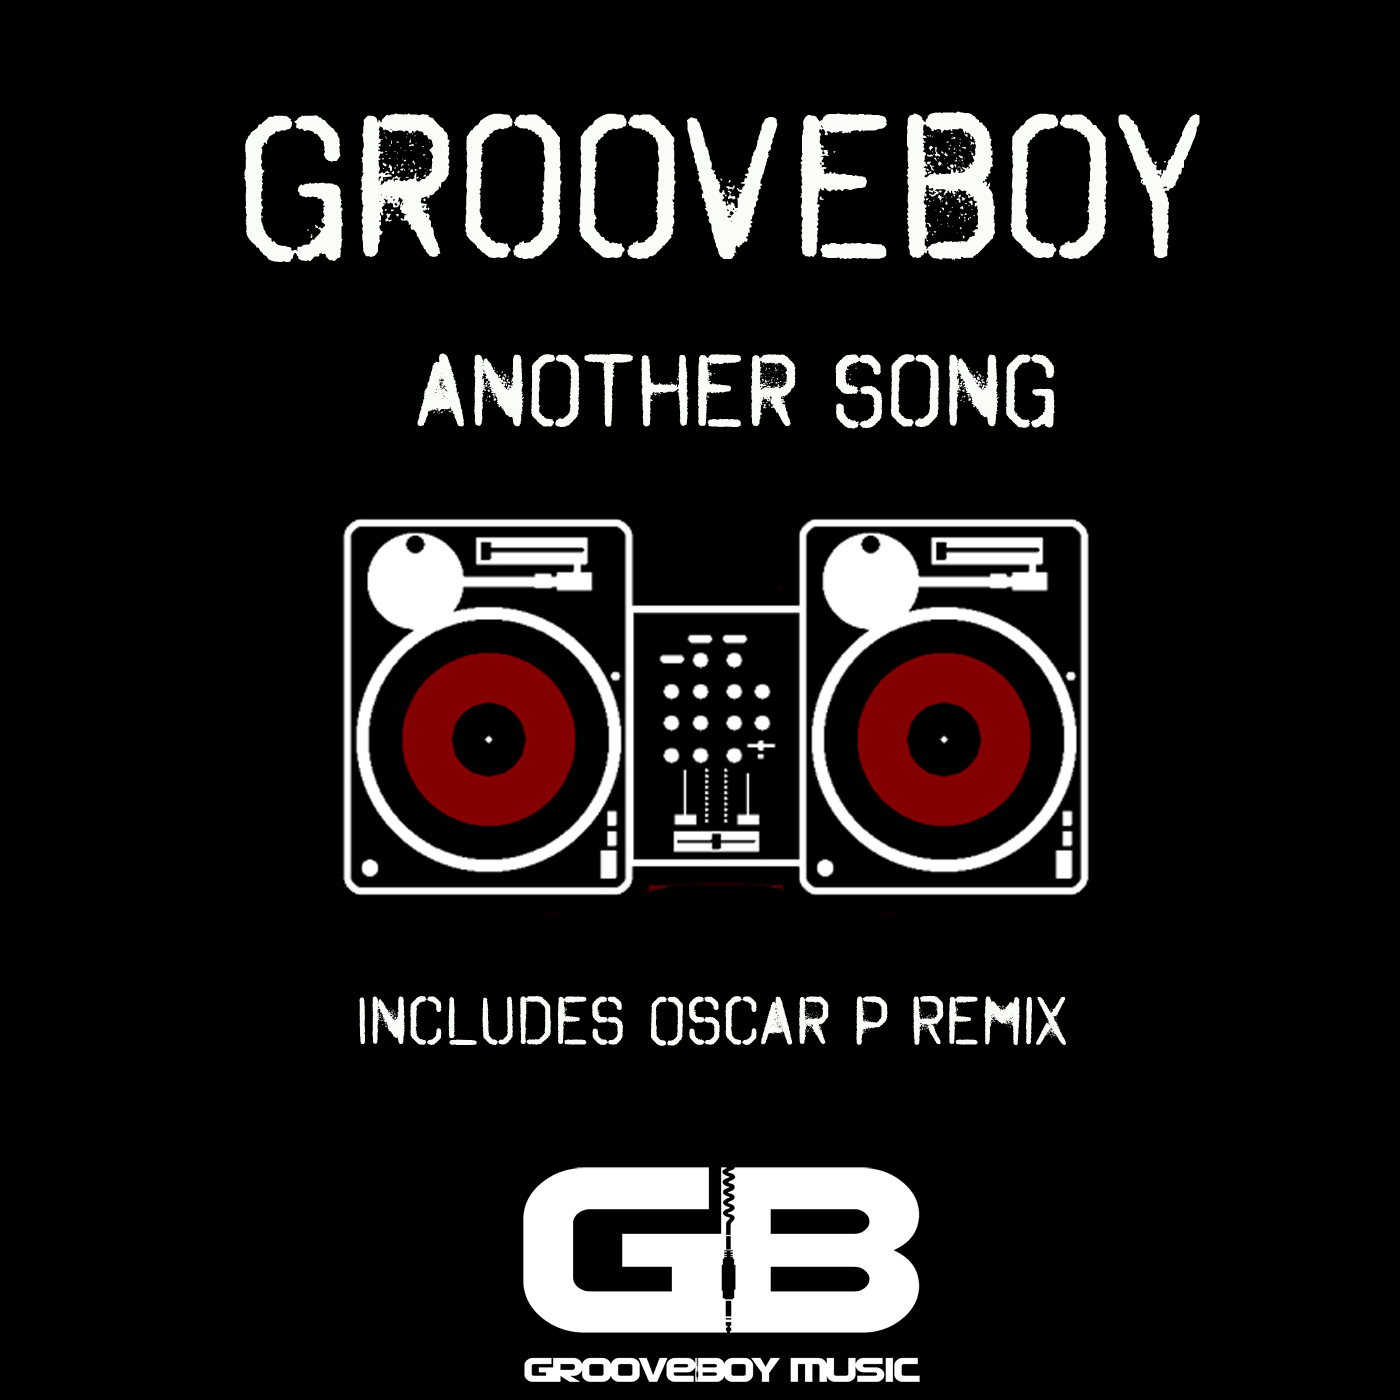 Grooveboy - Another Song